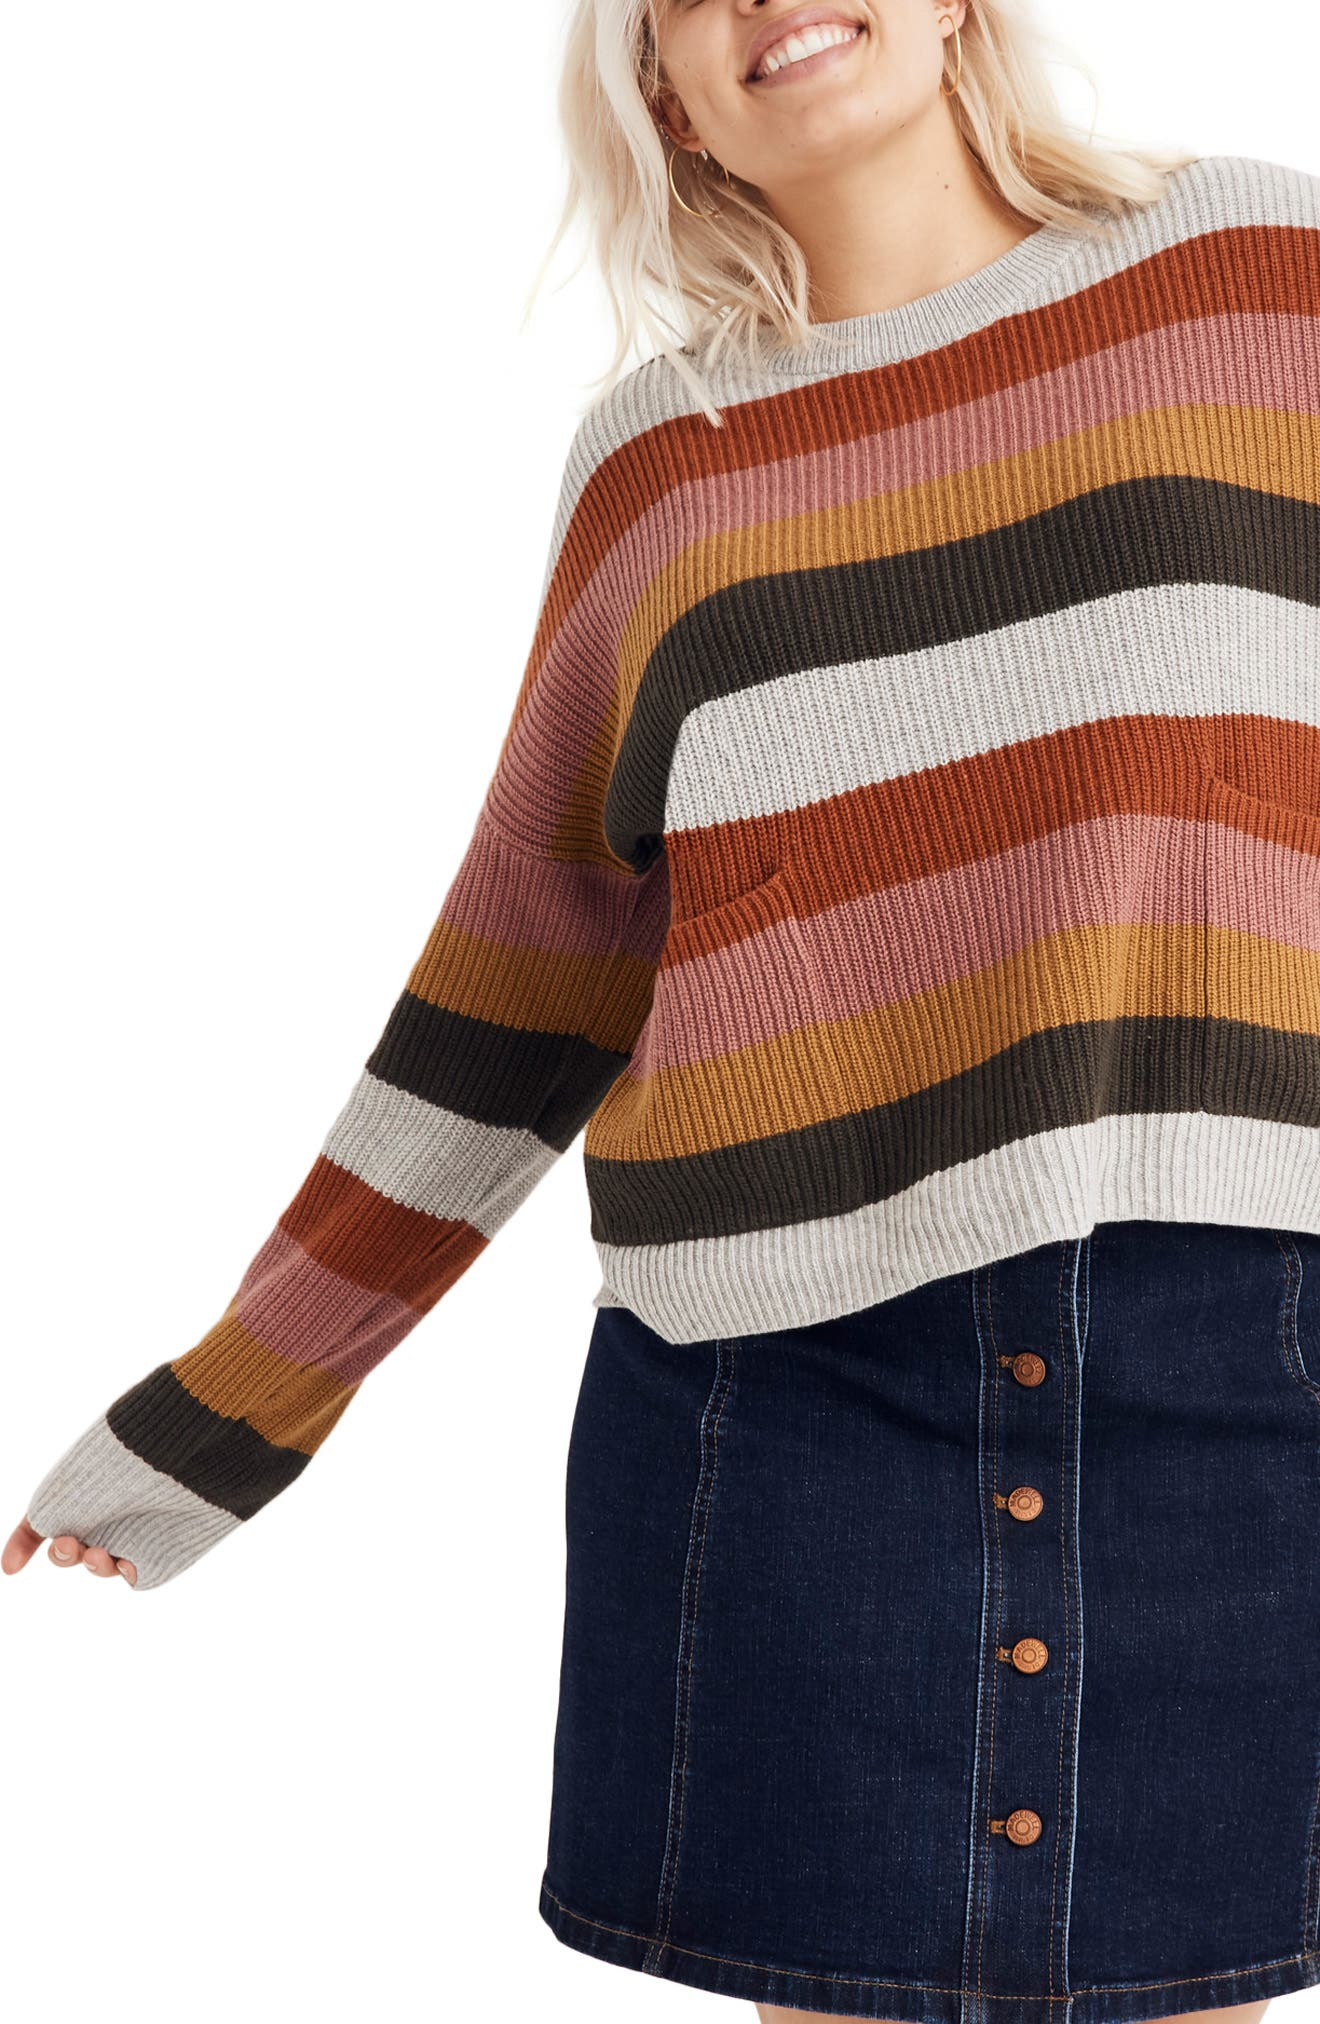 Patch Pocket Pullover Sweater,                             Main thumbnail 1, color,                             900